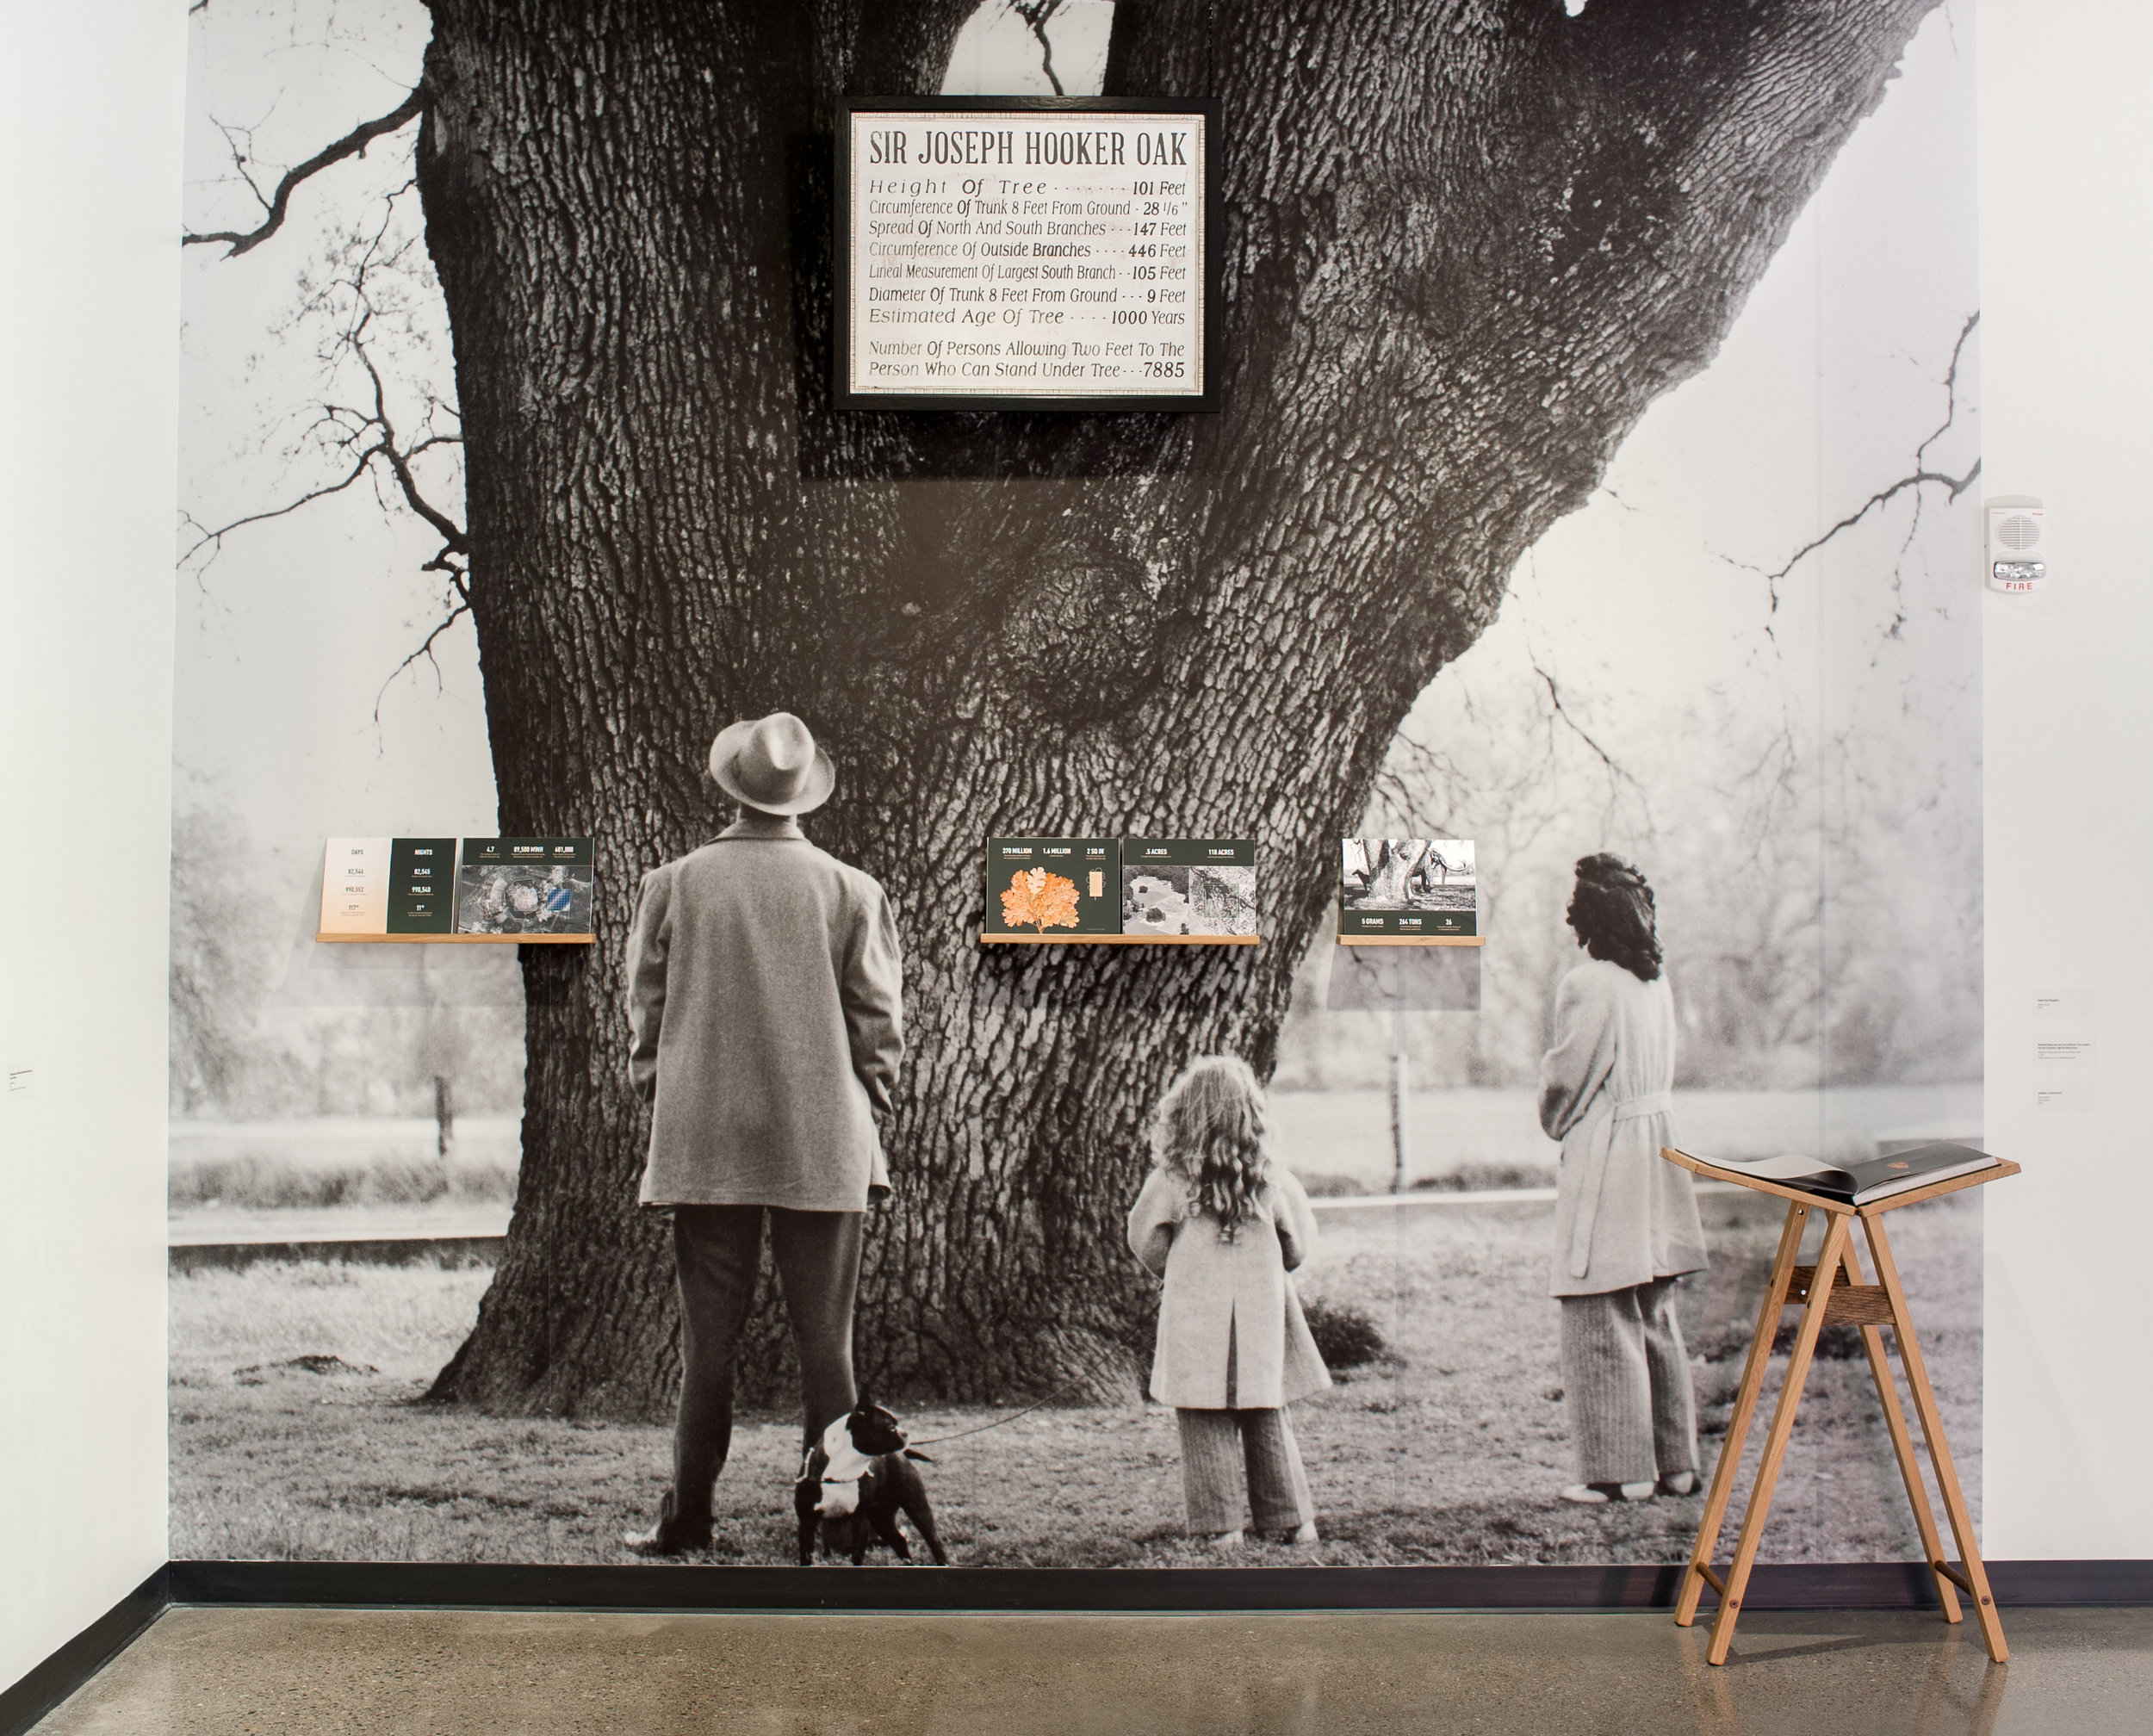 Recreation of Hooker Oak Sign and tree printed at scale.